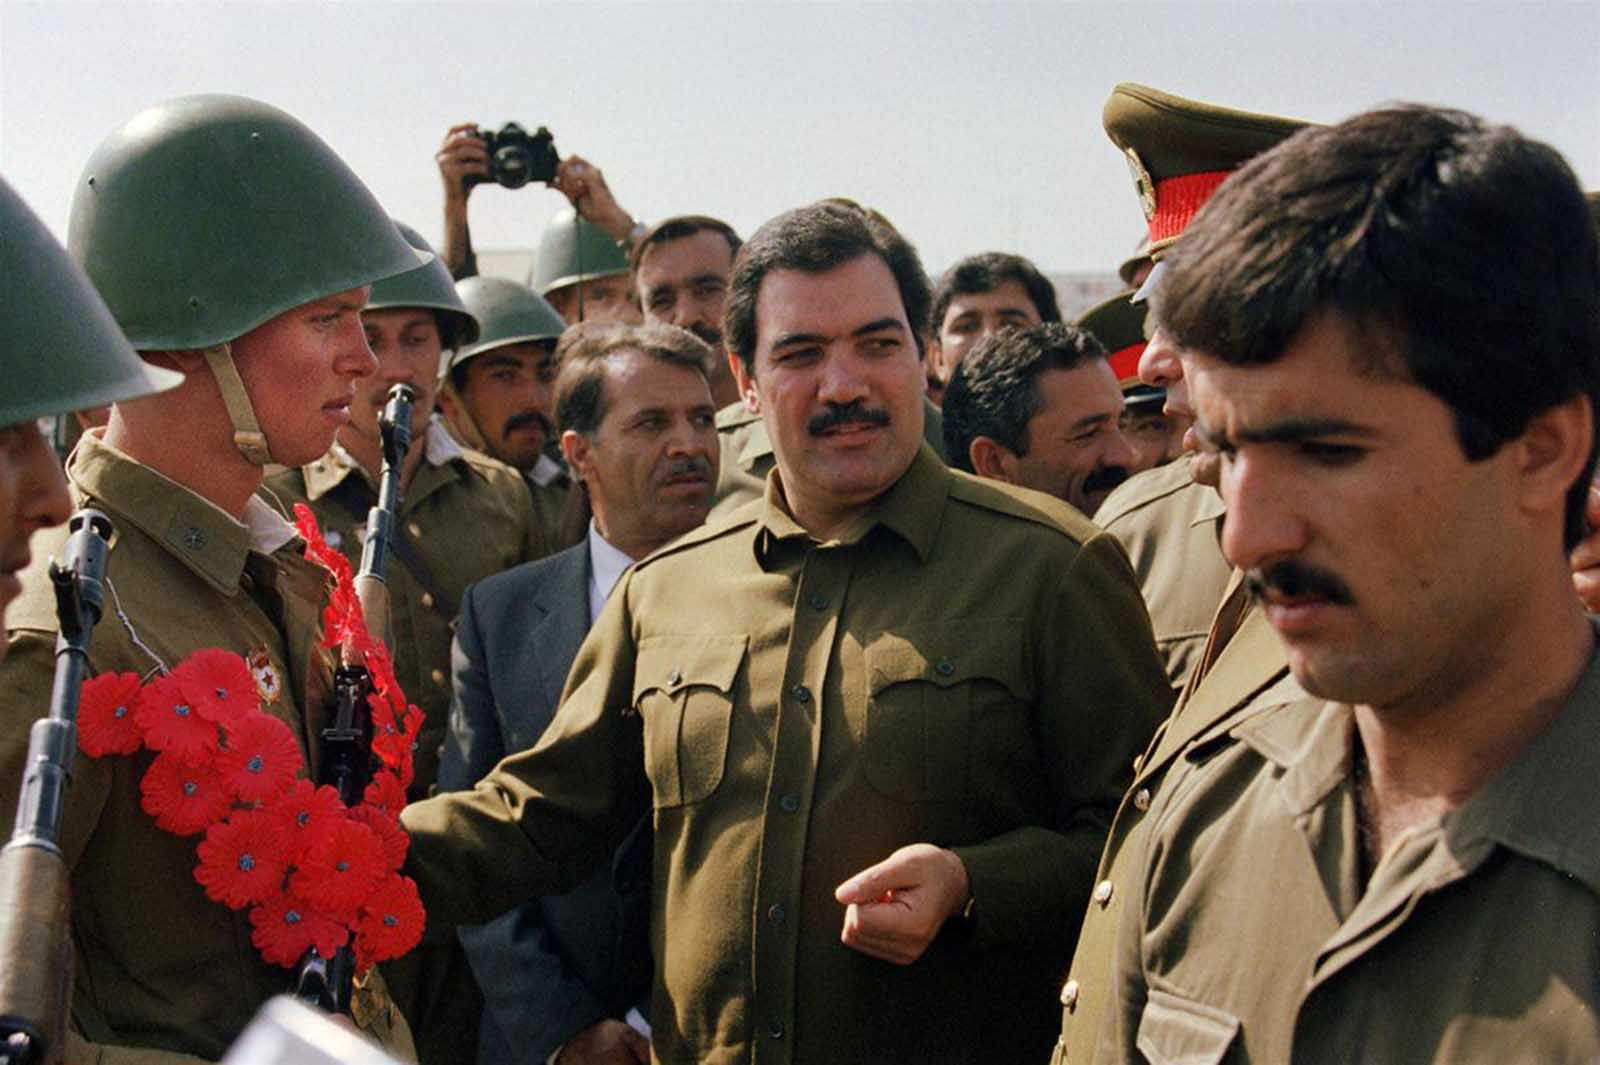 Afghanistan's president Mohammed Najibullah (center) smiles as he meets Red Army soldiers on October 19, 1986, in downtown Kabul during a parade. Najibullah who became president in 1986, was later hanged in a street near the UN compound in Kabul on September 27, 1996, where he had sought sanctuary since April 1992 when Mujahideen guerrillas entered Afghan capital.